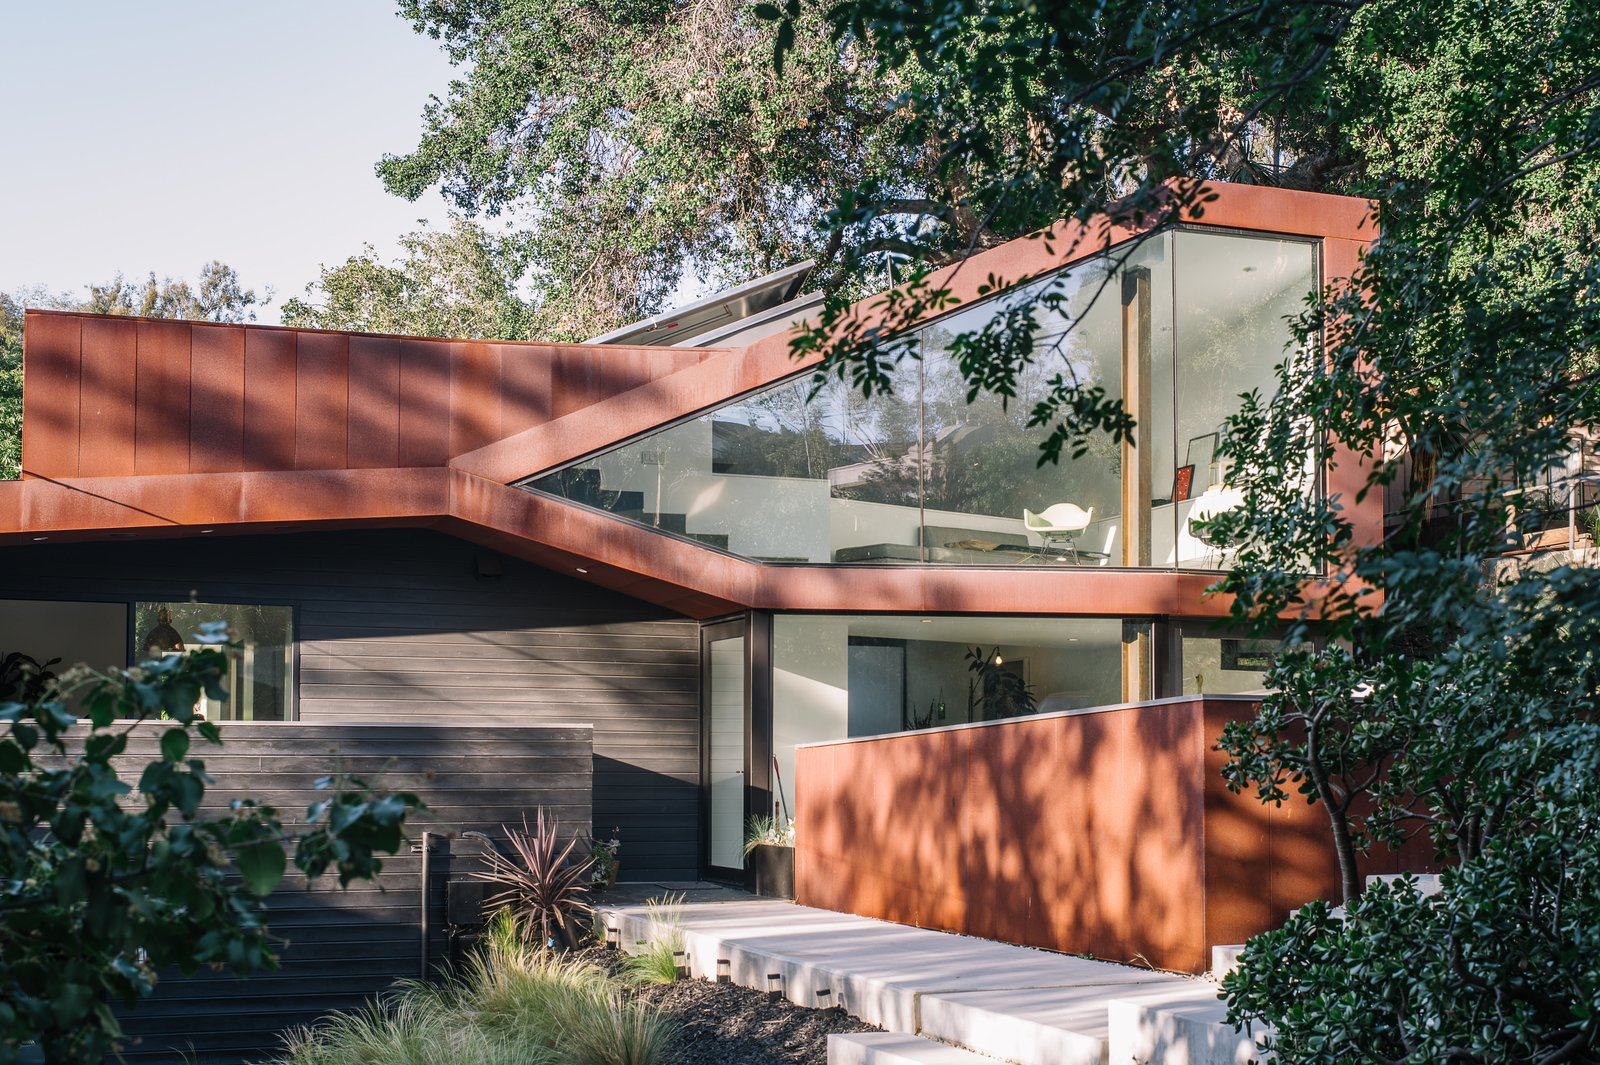 Exterior, House Building Type, Metal Siding Material, Wood Siding Material, Glass Siding Material, and Metal Roof Material Resident Richard Kim, who works as the head of design at electric car company Faraday Future, tested his know-how with the creation of his own Los Angeles home, a curvilinear structure clad in Cor-Ten steel and black-stained cedar.  Photo 1 of 10 in This Los Angeles Home is Driven by Automotive Design